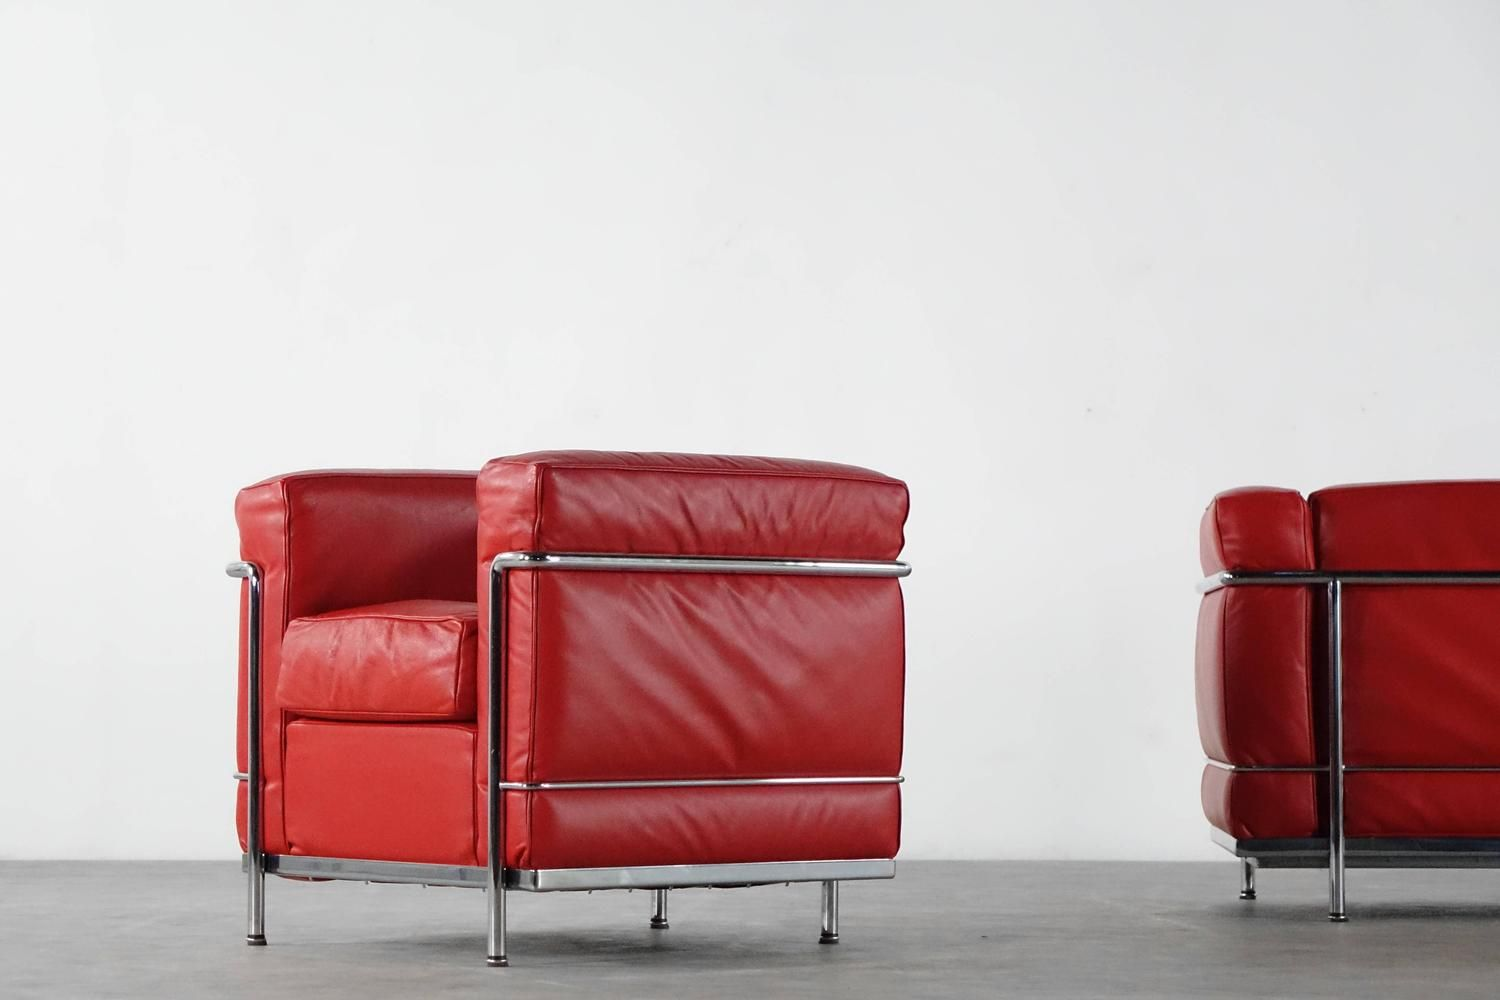 Le corbusier furniture celebrate le corbusier top 5 most famous works - Cassina Lc2 Sofa Le Corbusier P Jeanneret Ch Perriand Two Seater